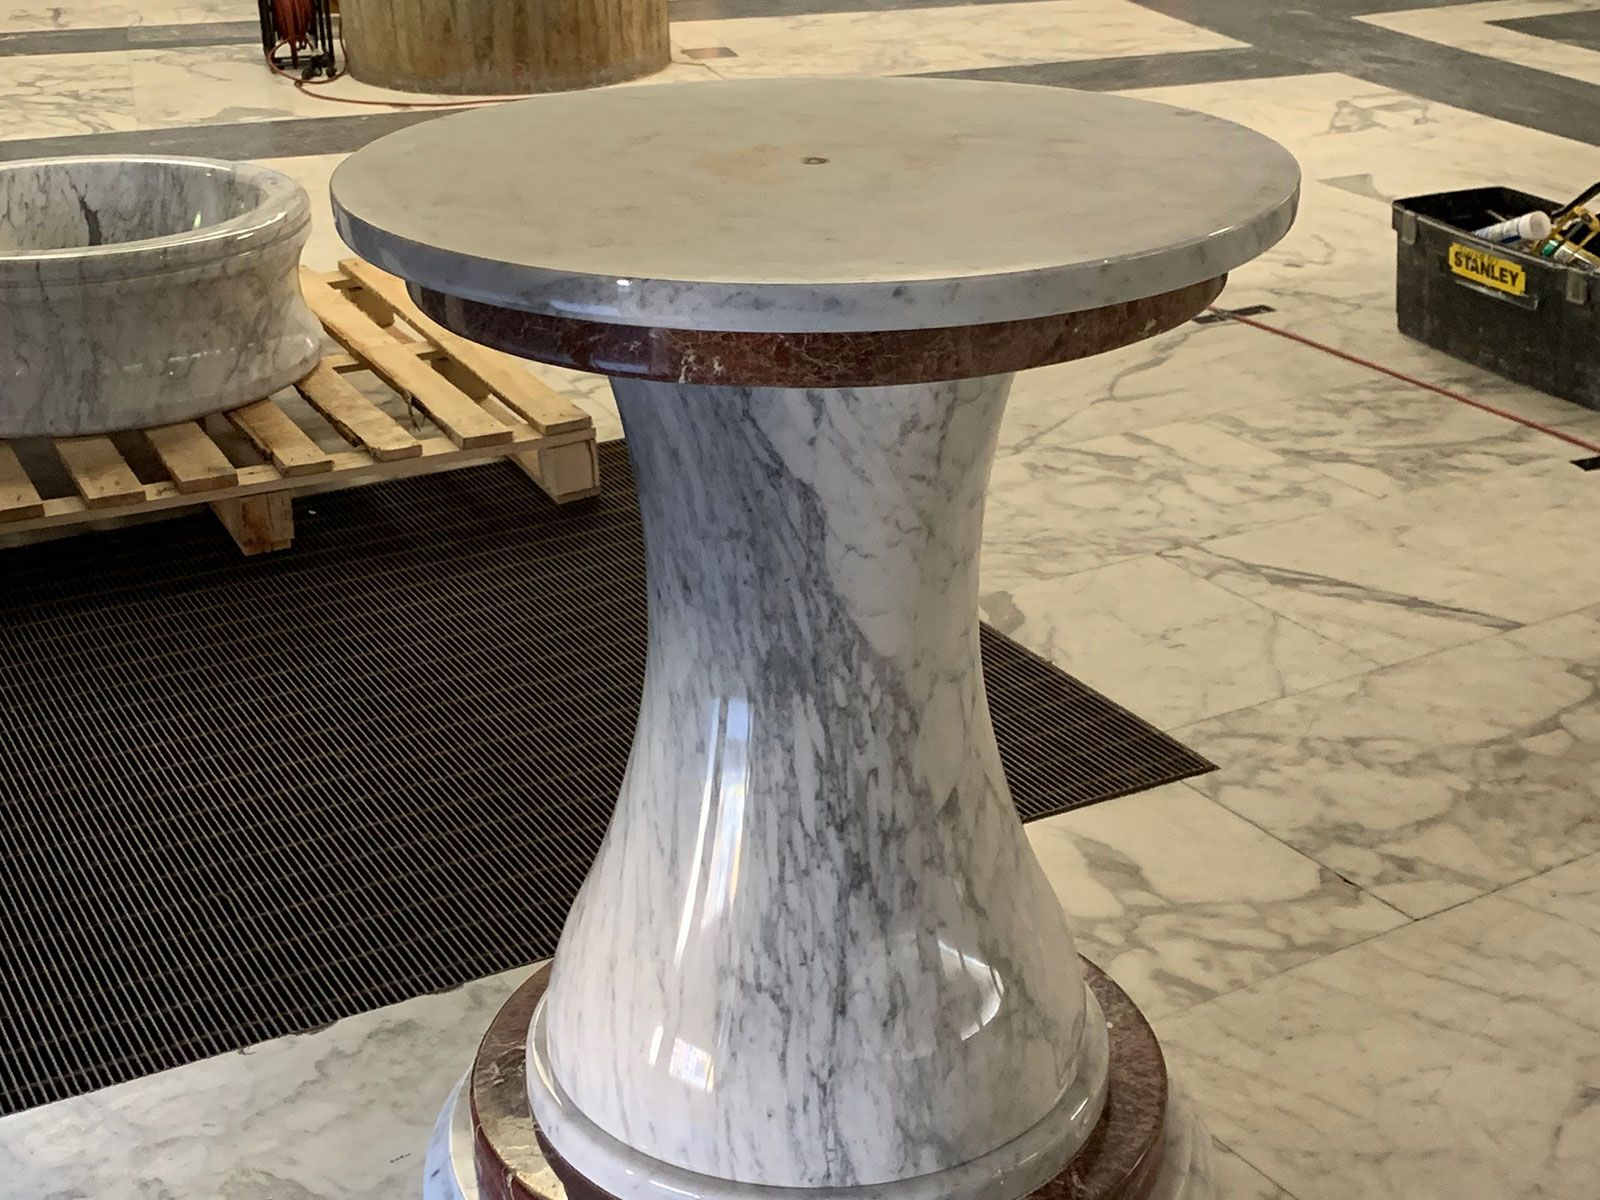 The marble pedestal of the holy water stoup